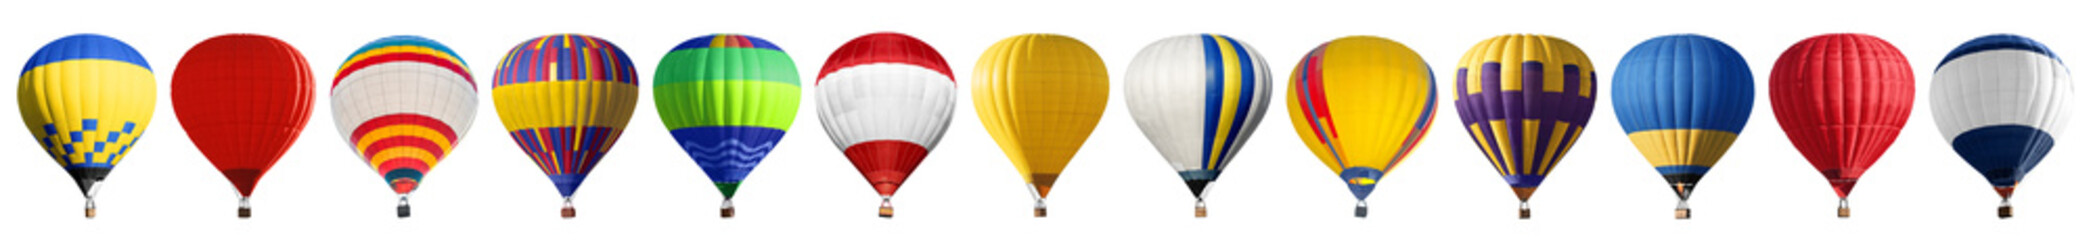 Poster Balloon Set of bright colorful hot air balloons on white background